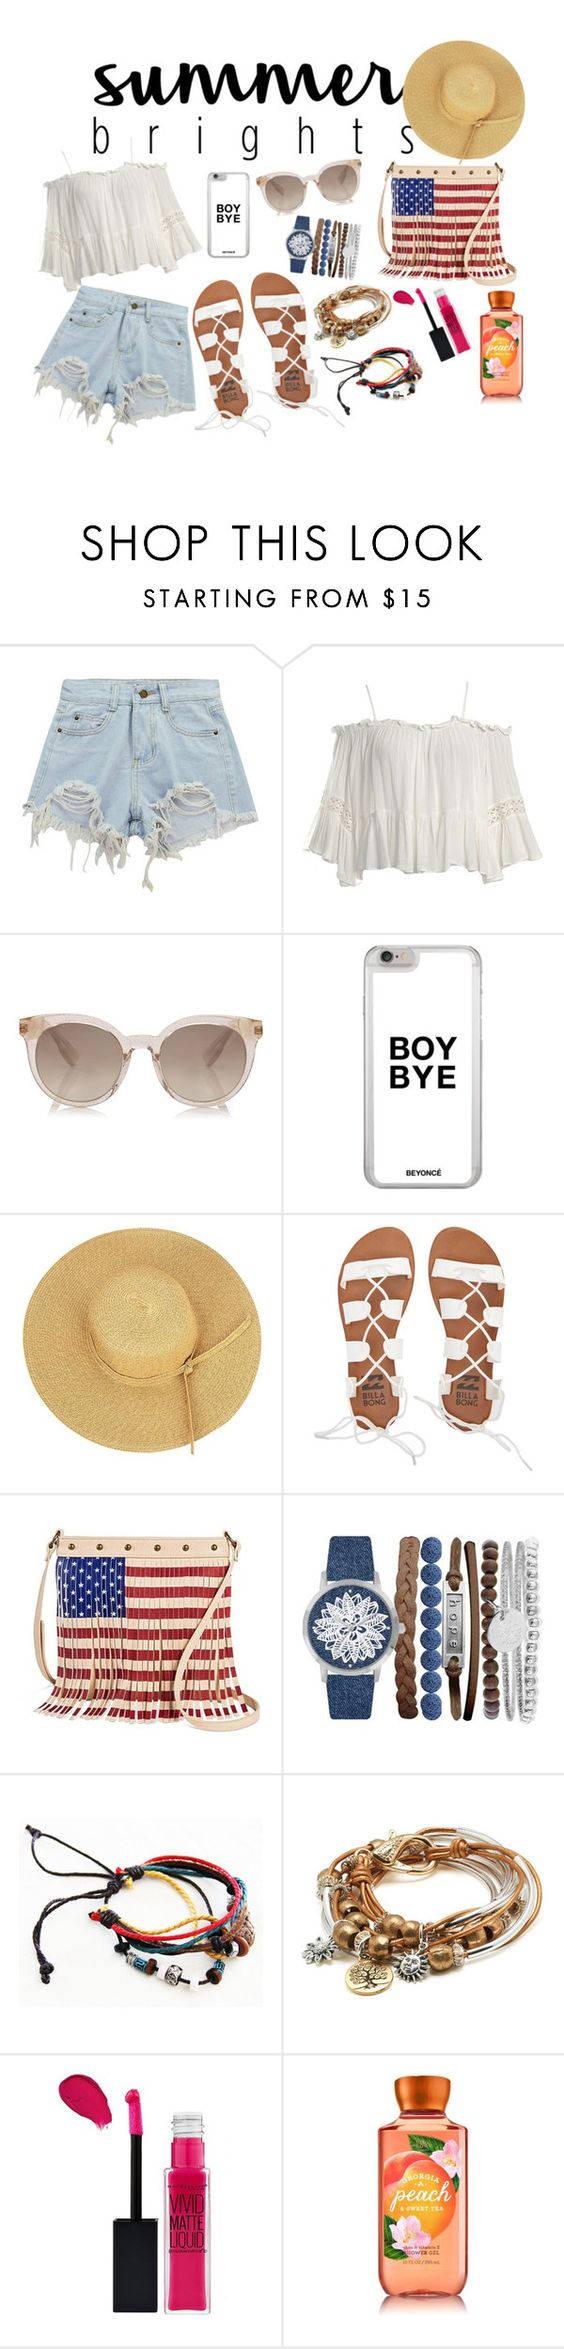 """Summer..!!"" by filmaandry ❤ liked on Polyvore featuring Chicnova Fashion, Sans Souci, Billabong, TWIG & ARROW, Jessica Carlyle, Lizzy James and Maybelline"